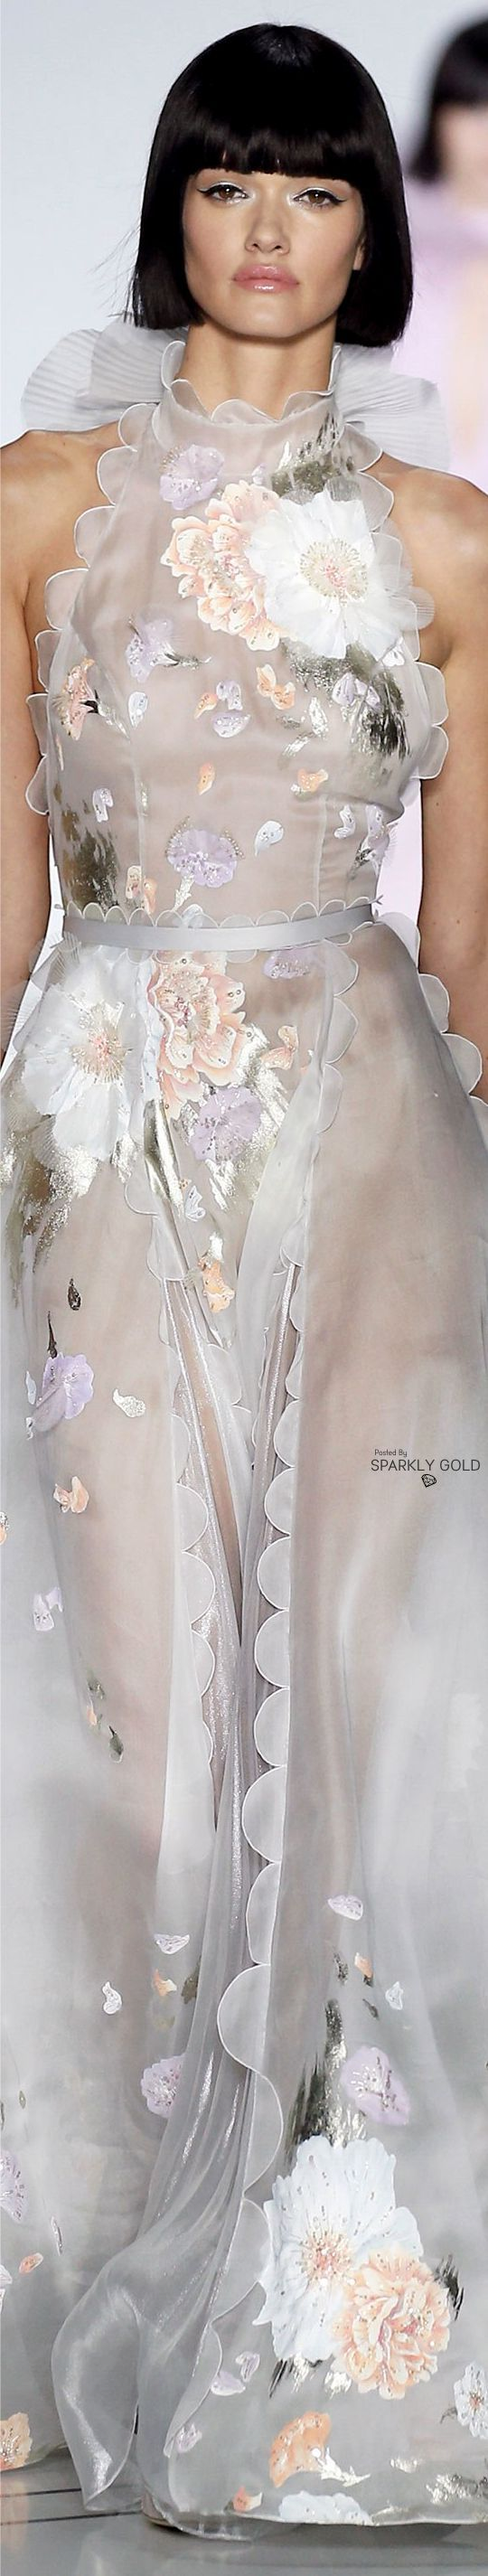 Ralph & Russo Spring 2017 Couture: